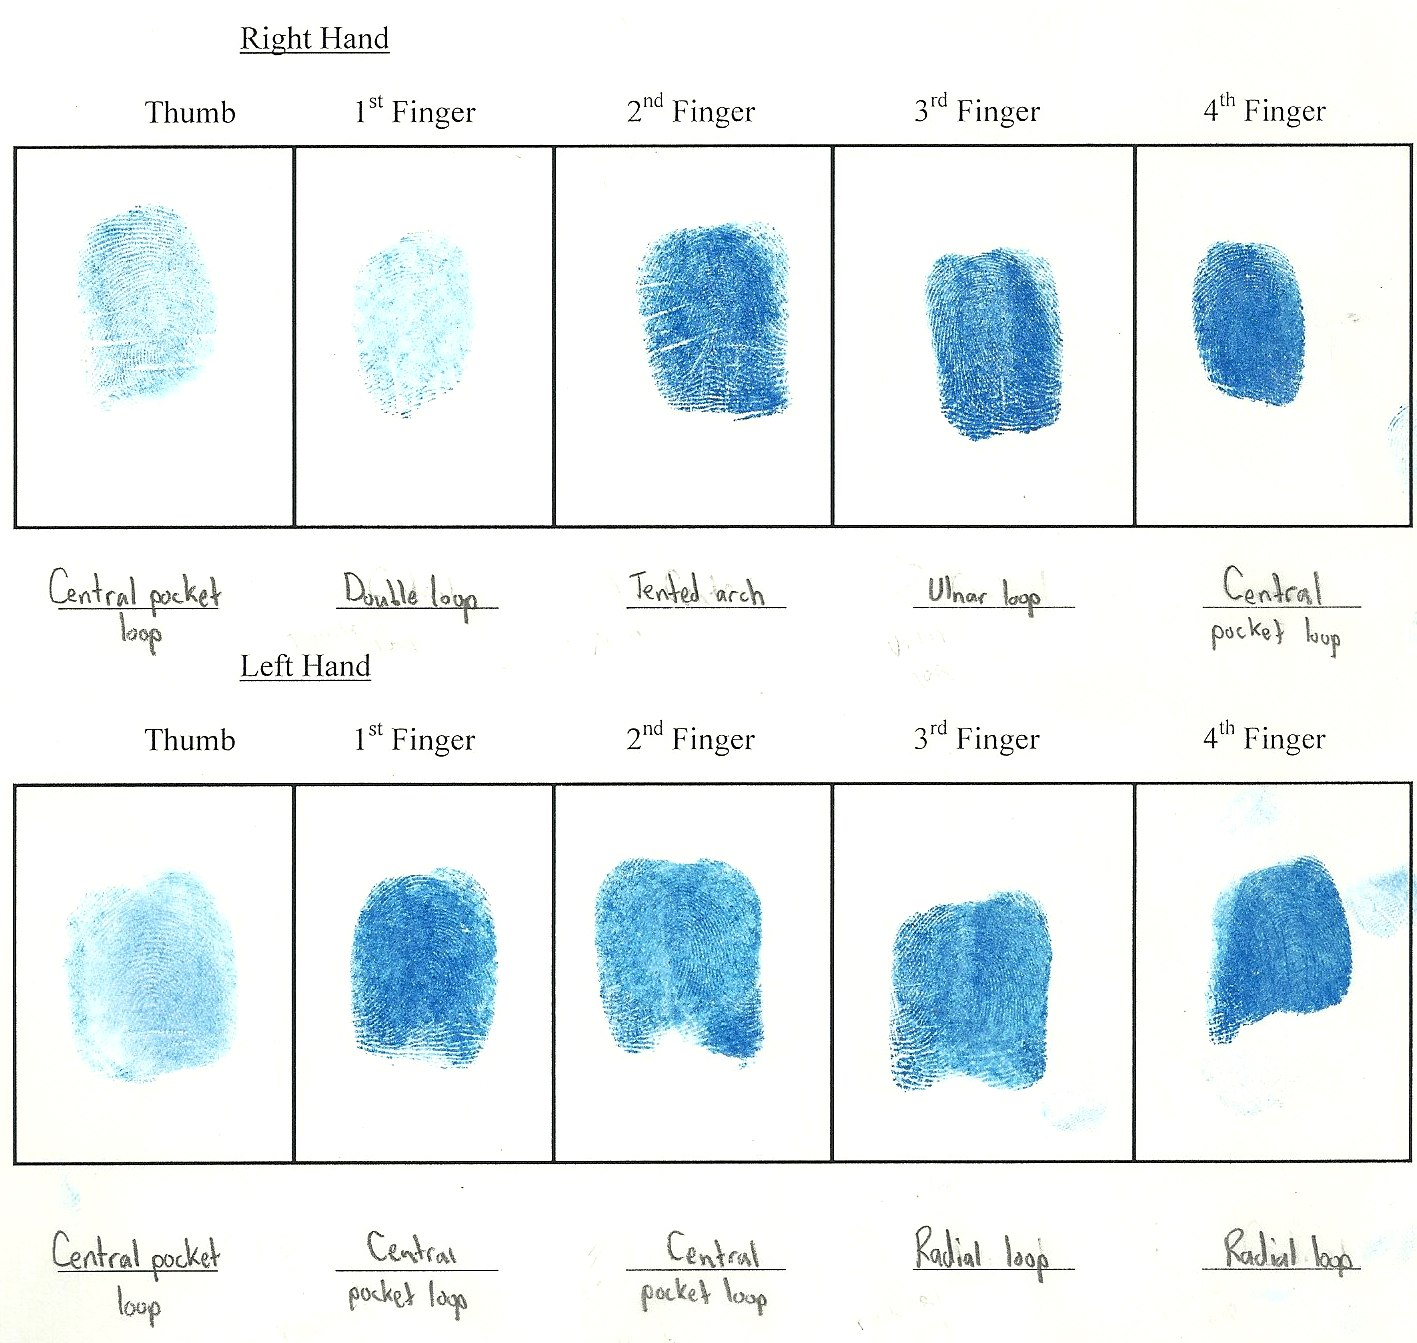 fingerprint paper template - forensics november 2011